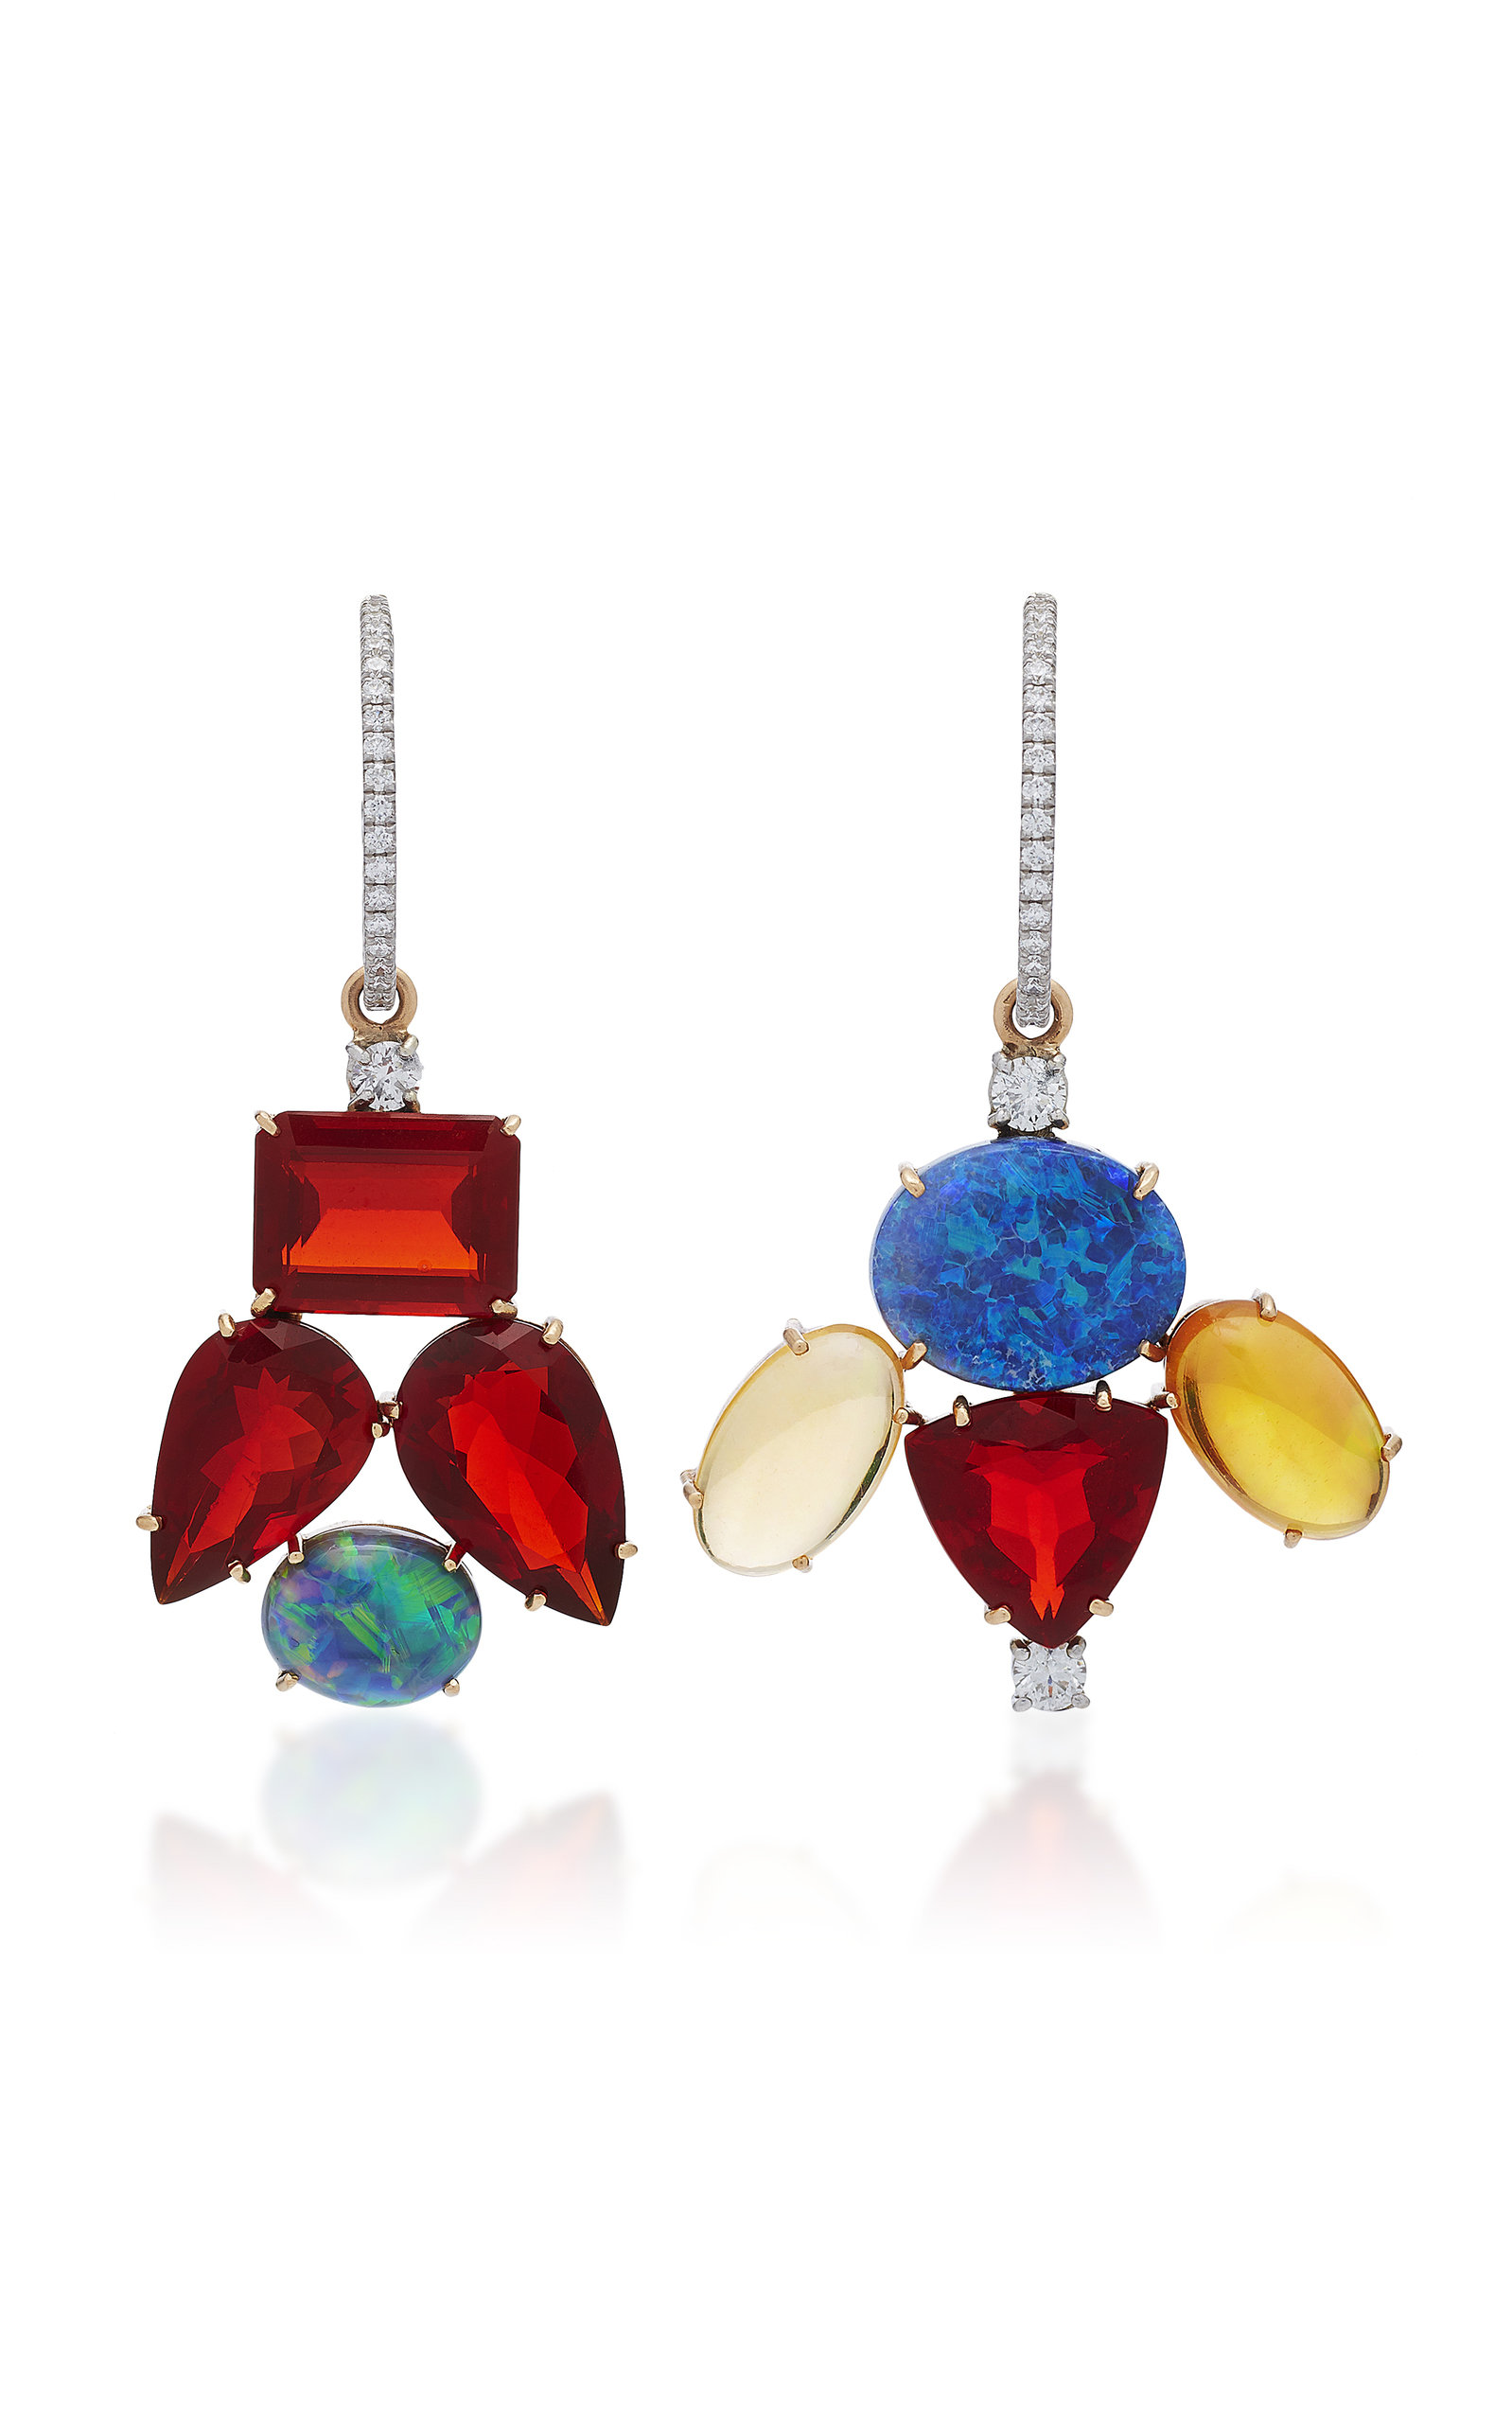 93c82f630 Irene Neuwirth One-Of-A-Kind 18K Gold Fire Opal And Opal Mismatch ...